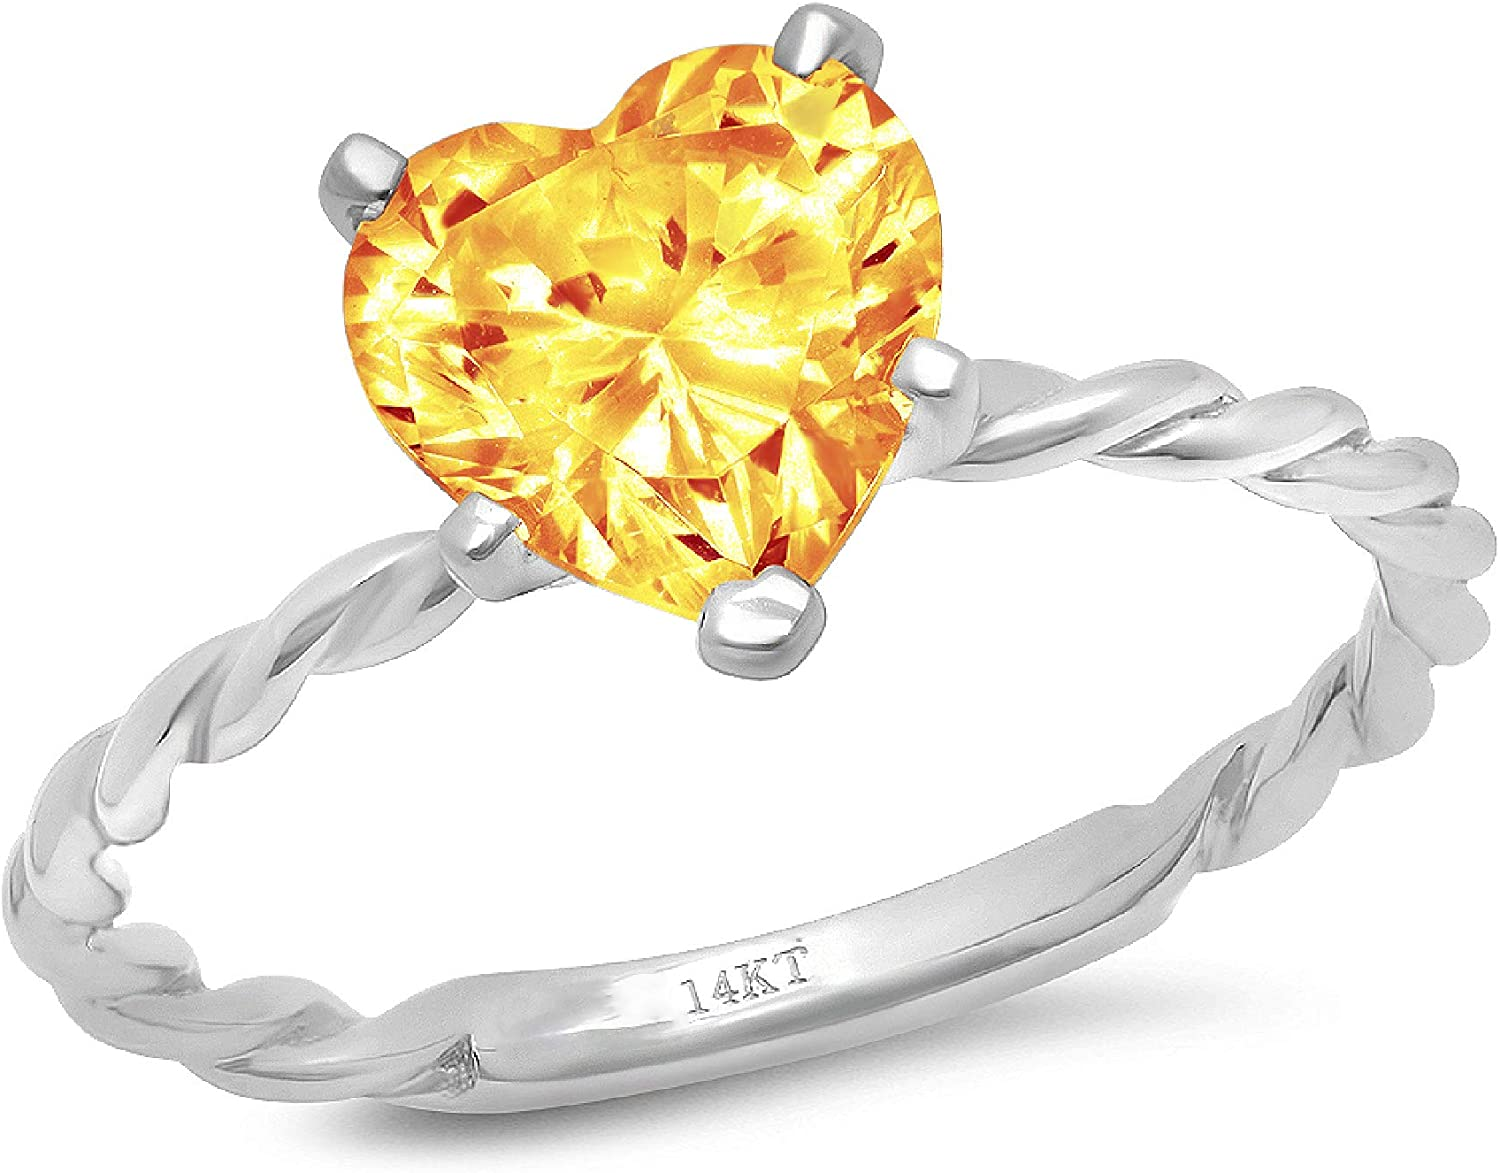 2.0 ct Brilliant Heart Cut Solitaire Y Twisted Natural Quantity limited Max 79% OFF Rope Knot